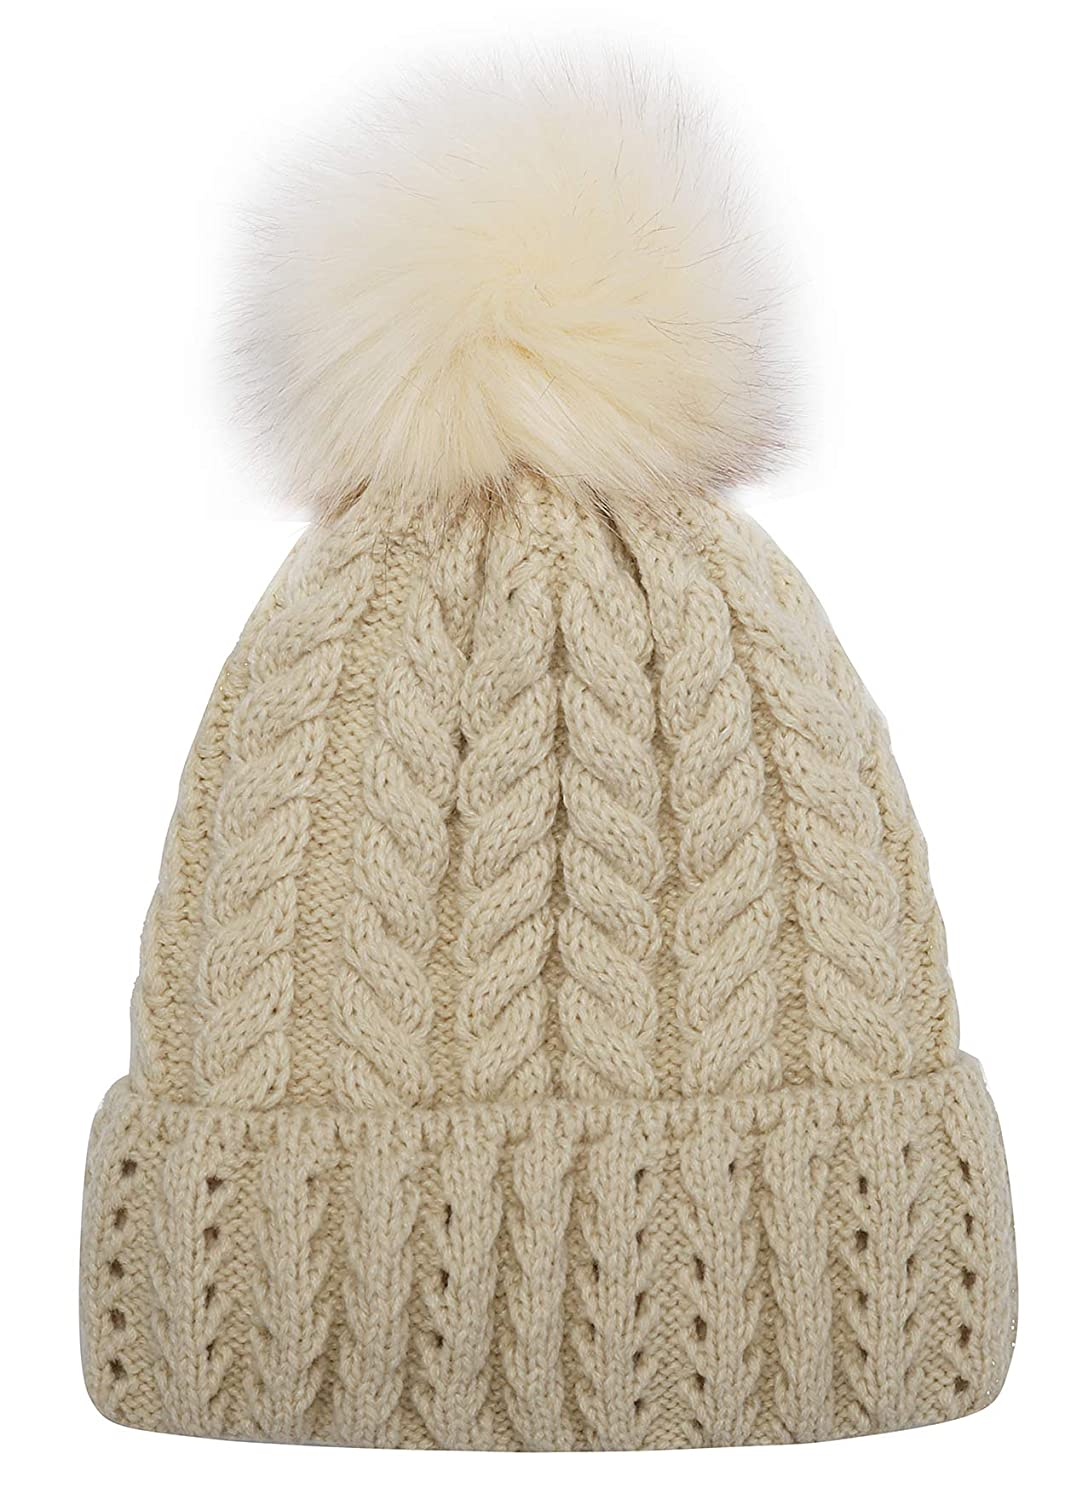 344d1ebbd01 Women Knit Hat Winter Beanie with PomPom Slouchy Hats Skull Cap Thick  Fleece Lining(Beige) at Amazon Women s Clothing store